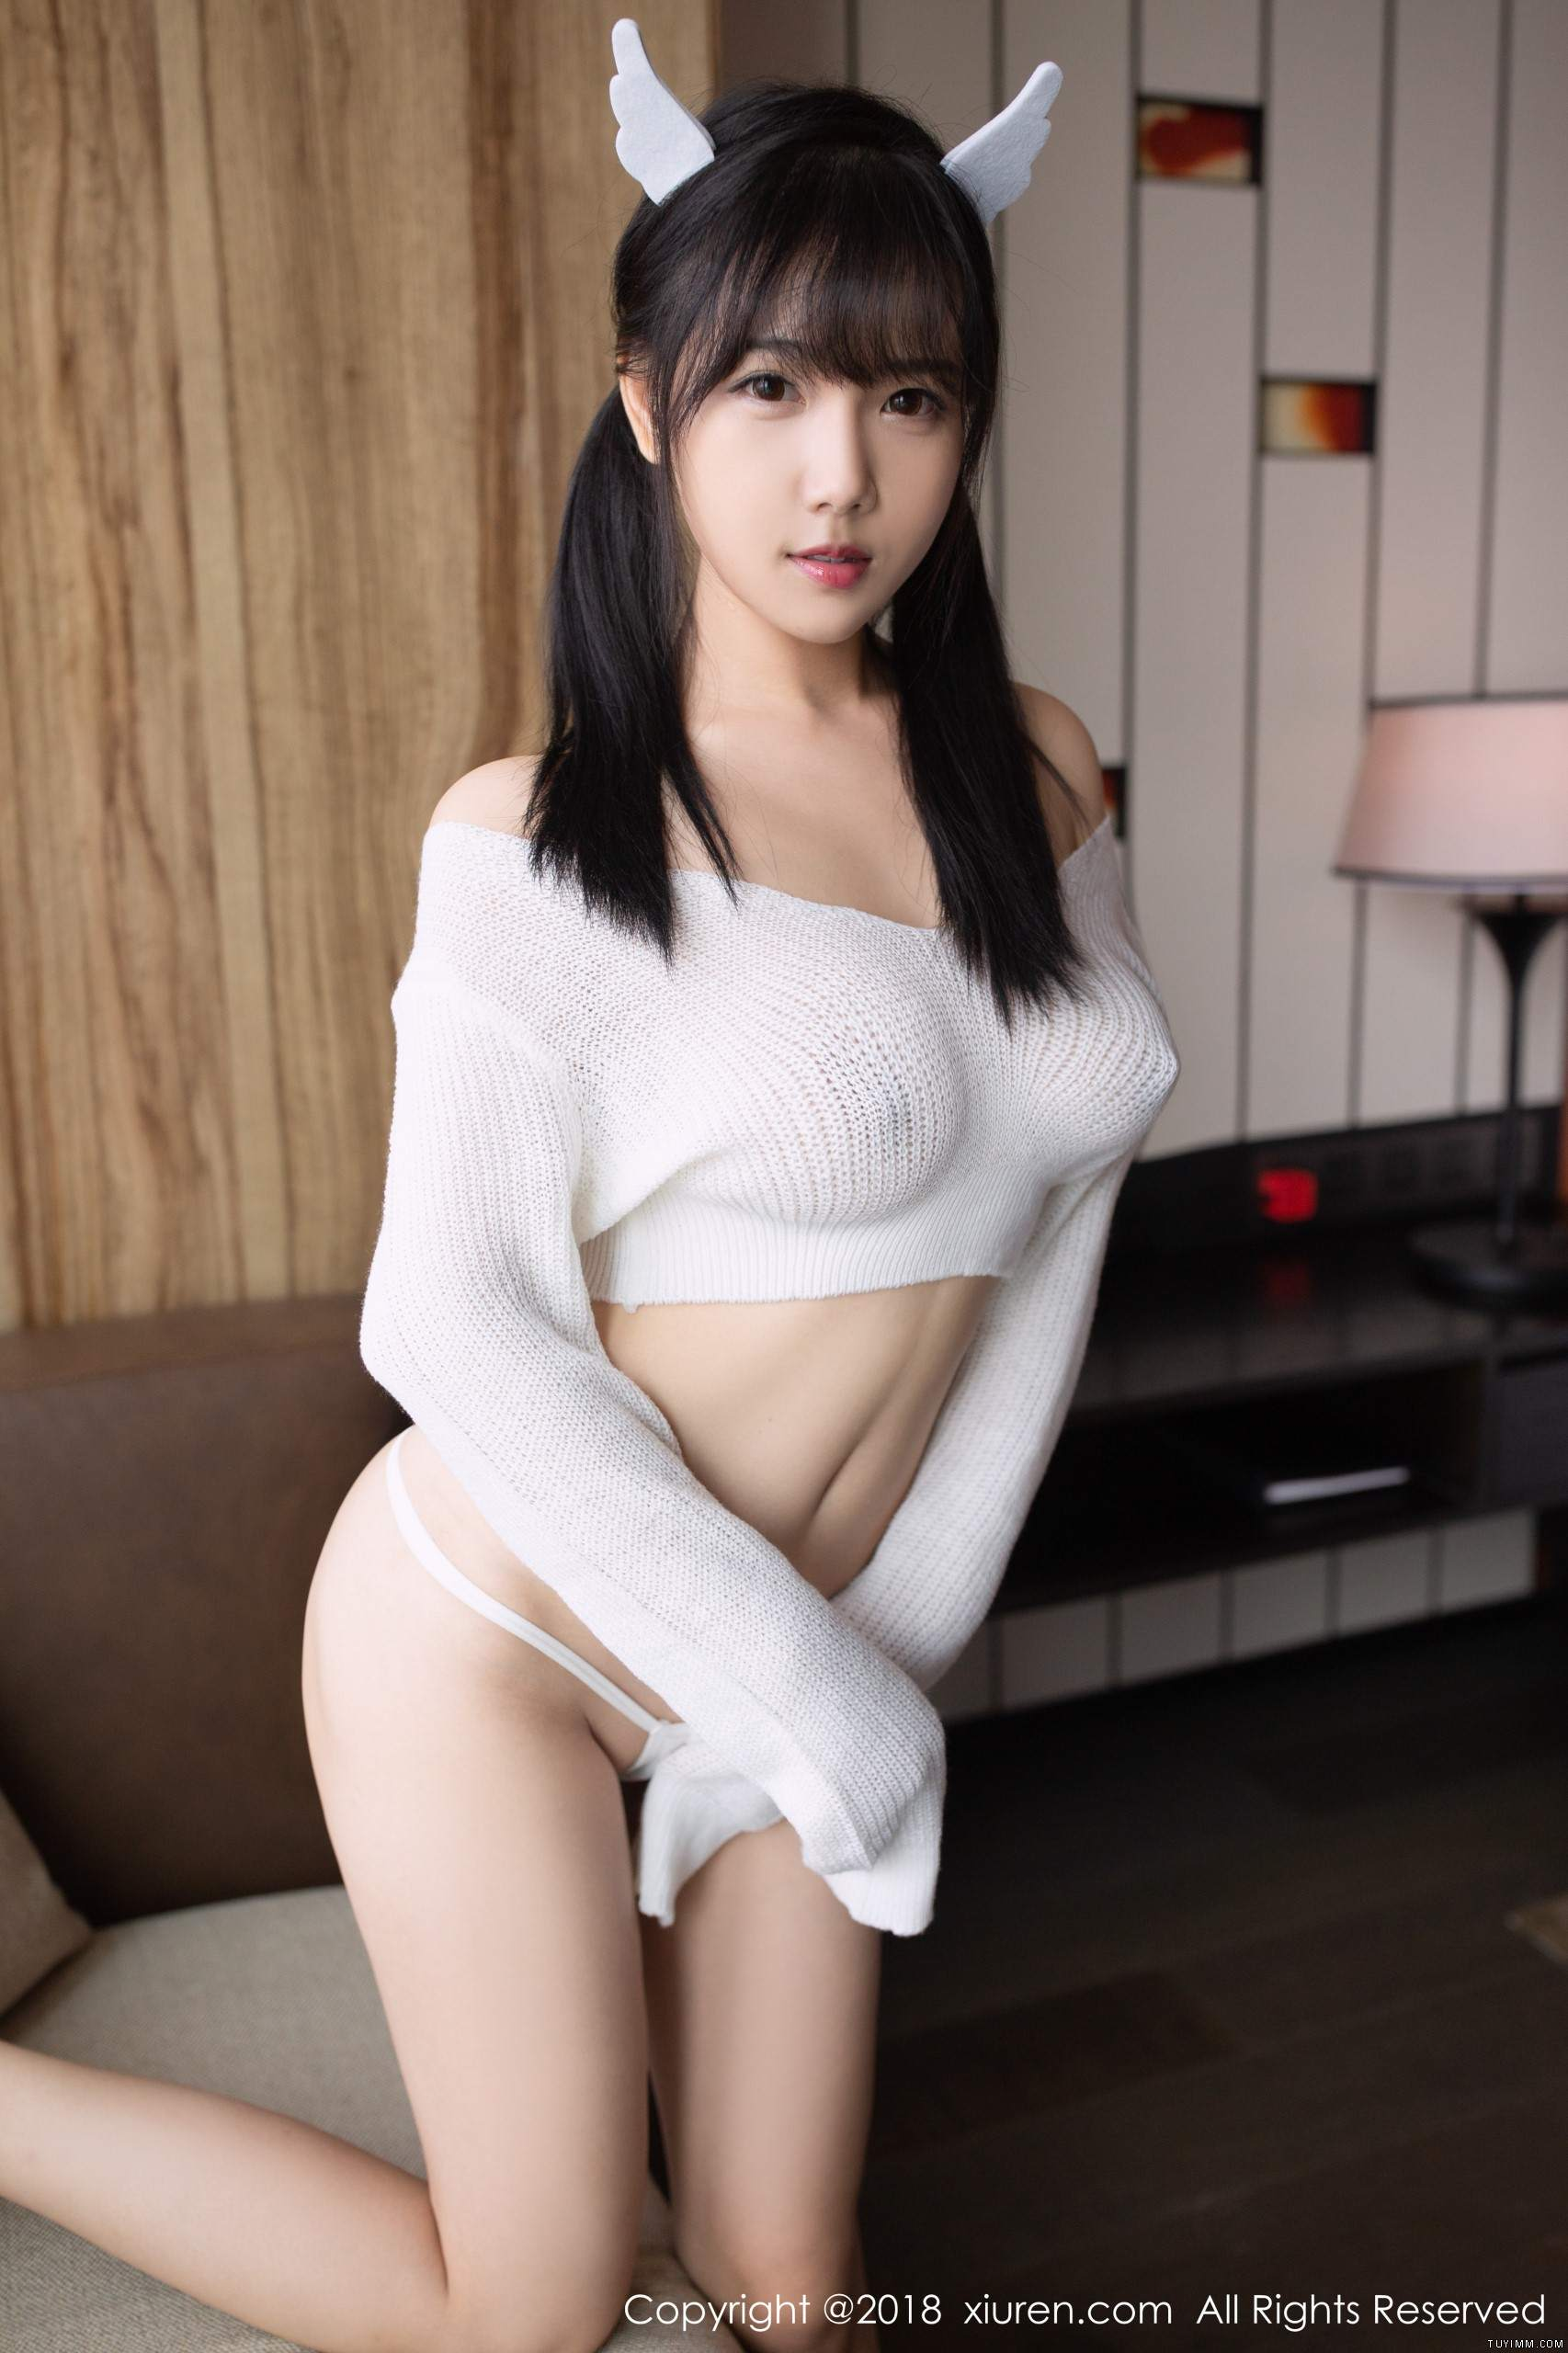 cool Chinese girl in transparent wearing